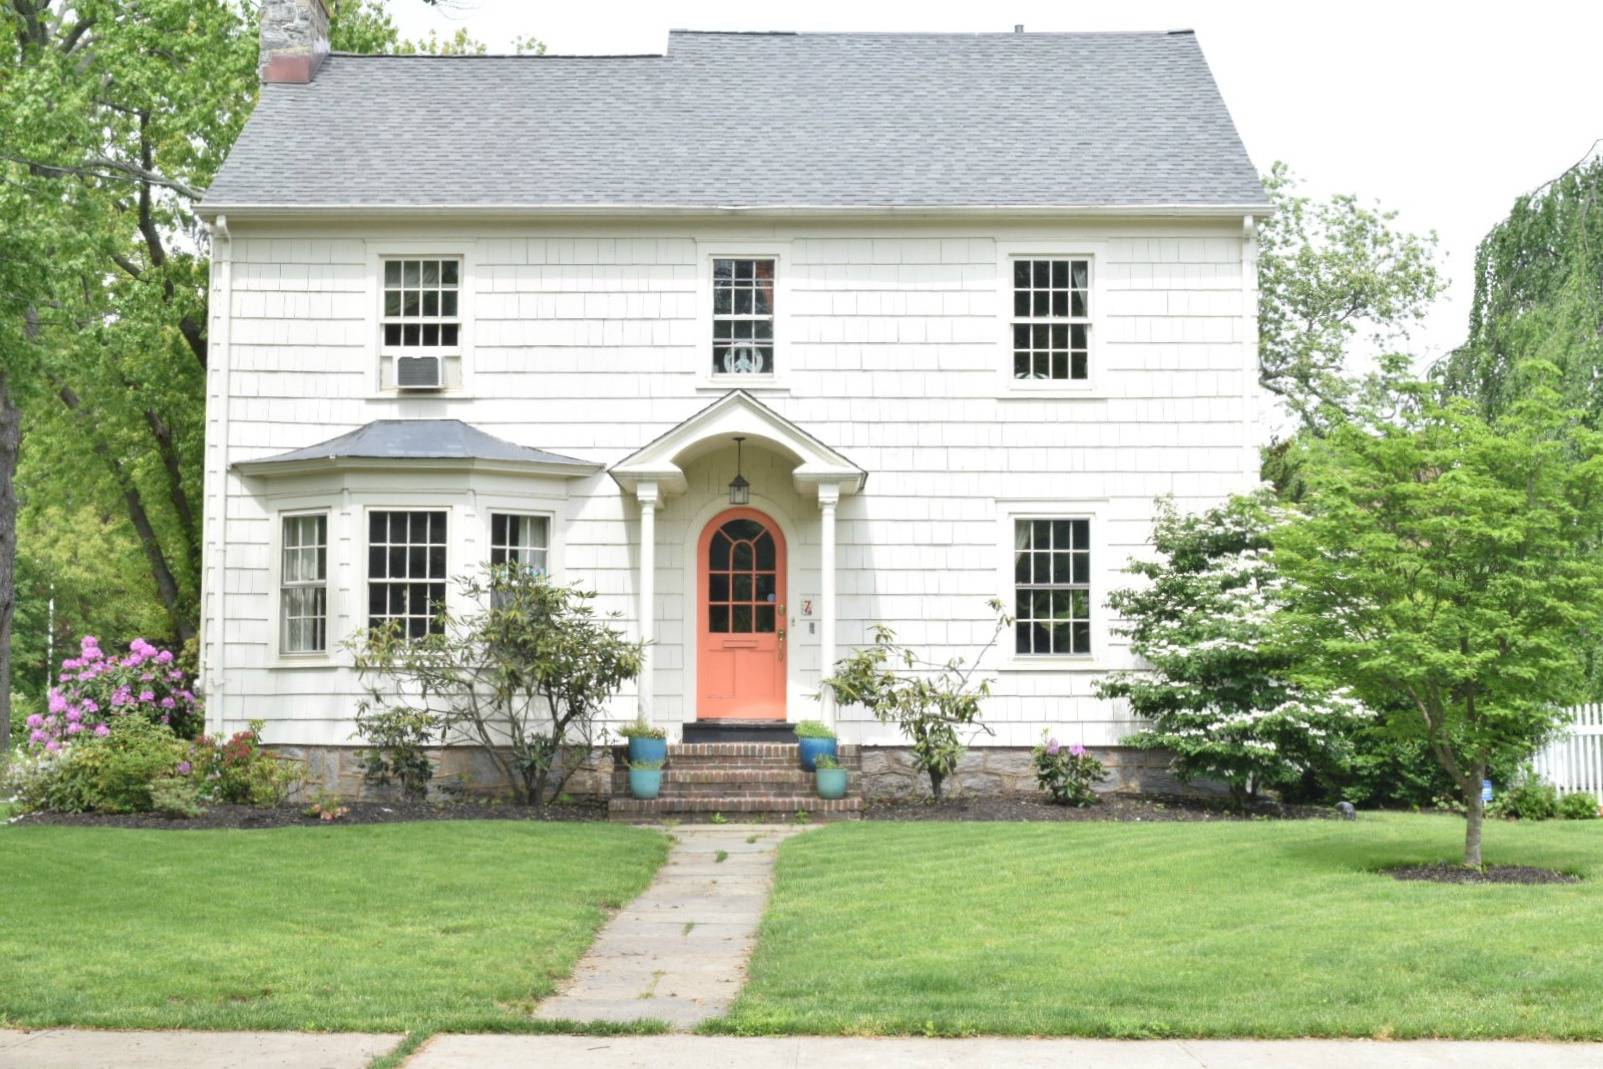 21 New England Style Home That Look So Elegant House Plans